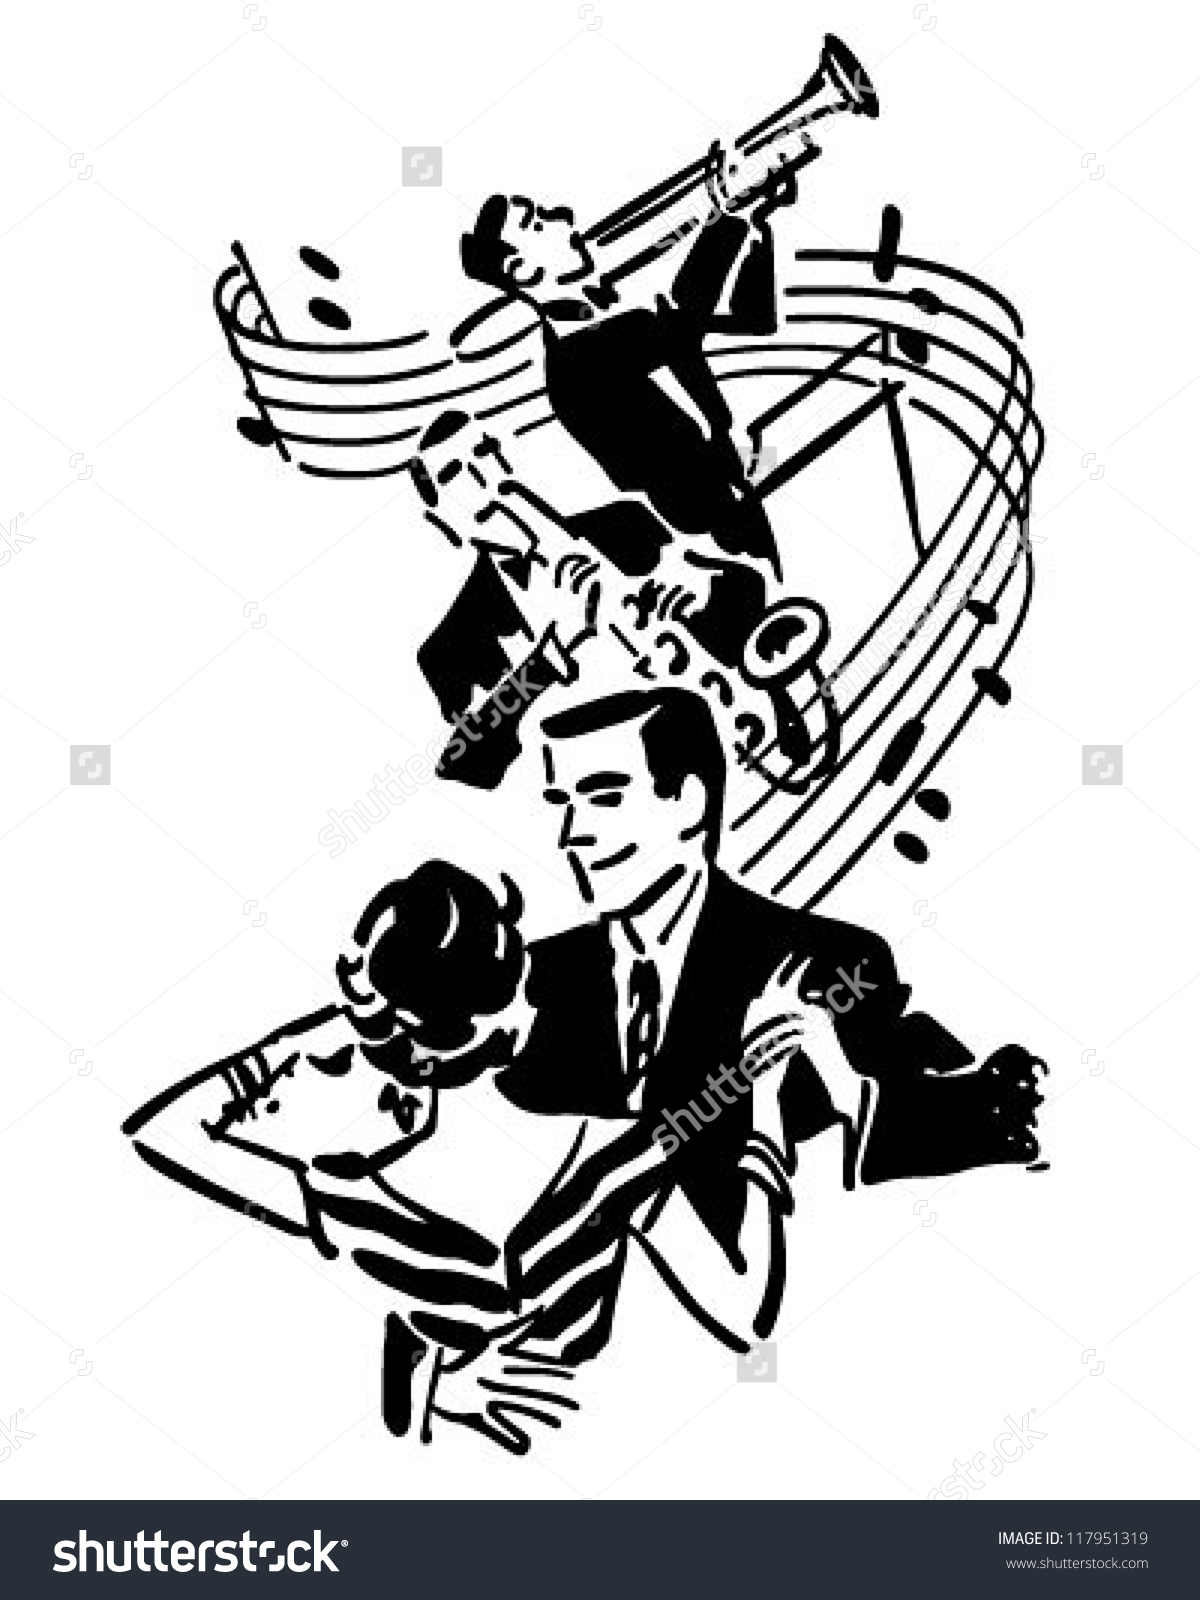 Good Music Dancing Retro Clipart Illustration Stock Vector.